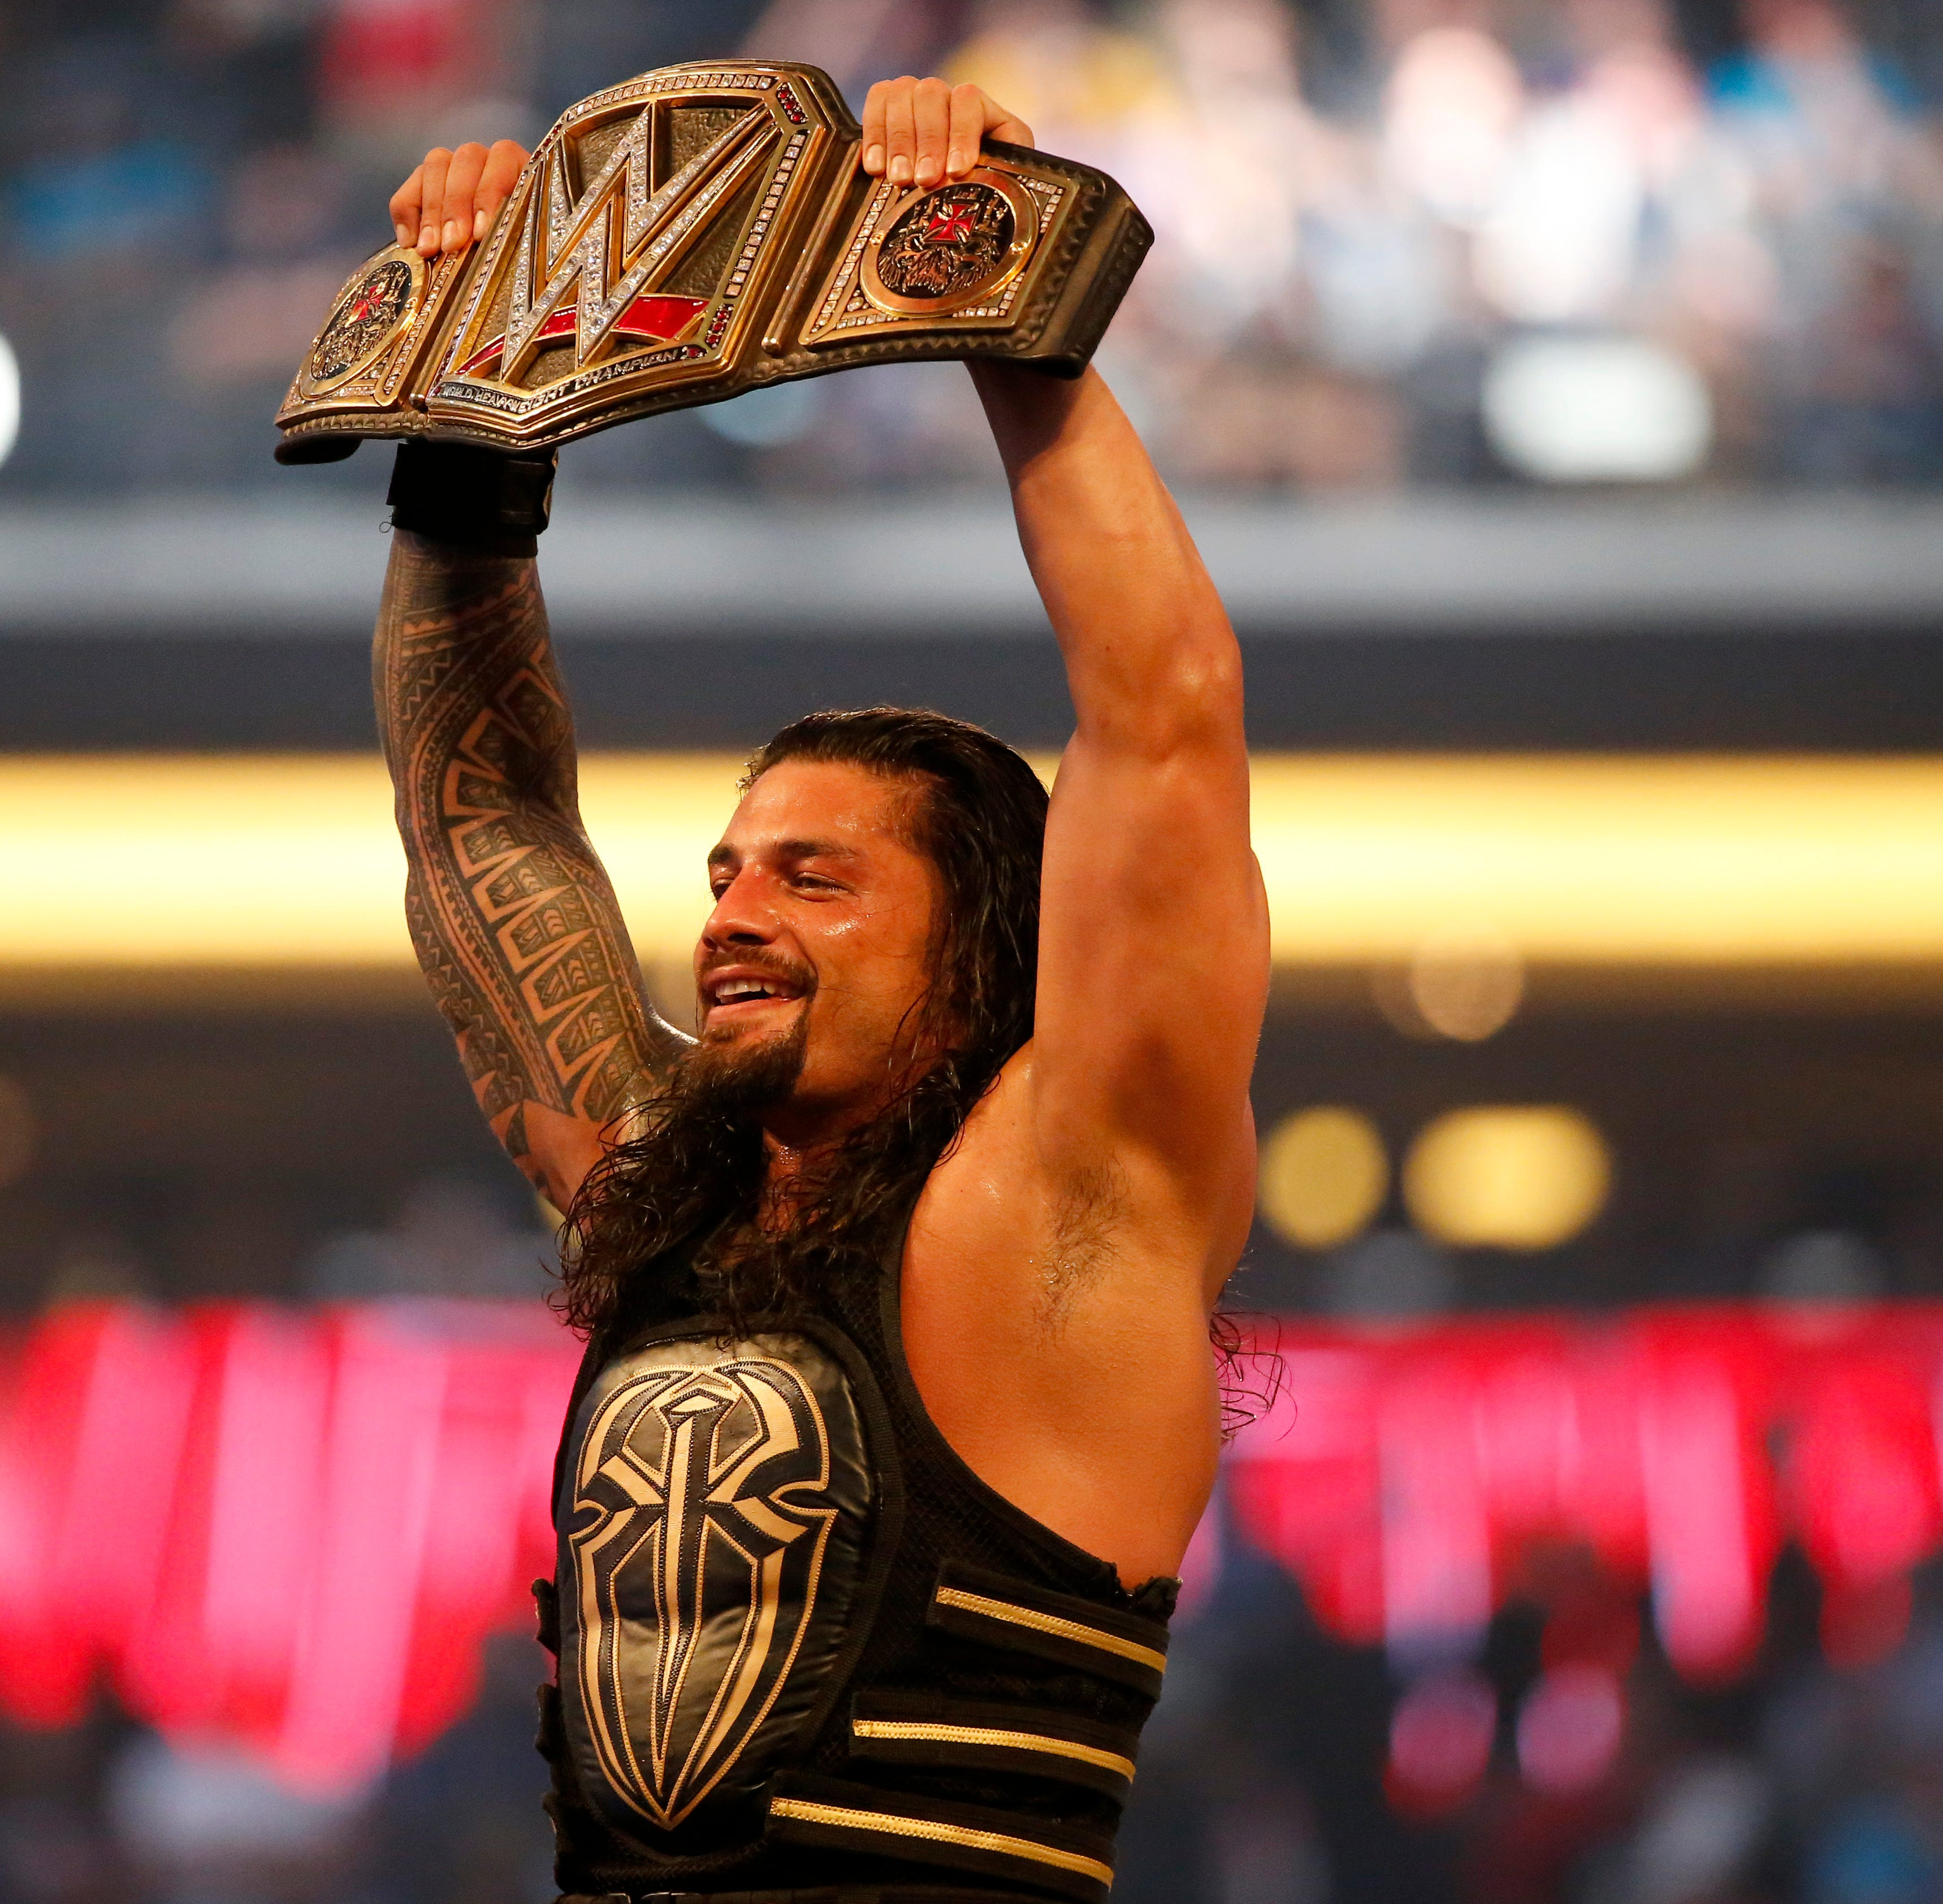 WWE star Roman Reigns reveals he's battling leukemia again